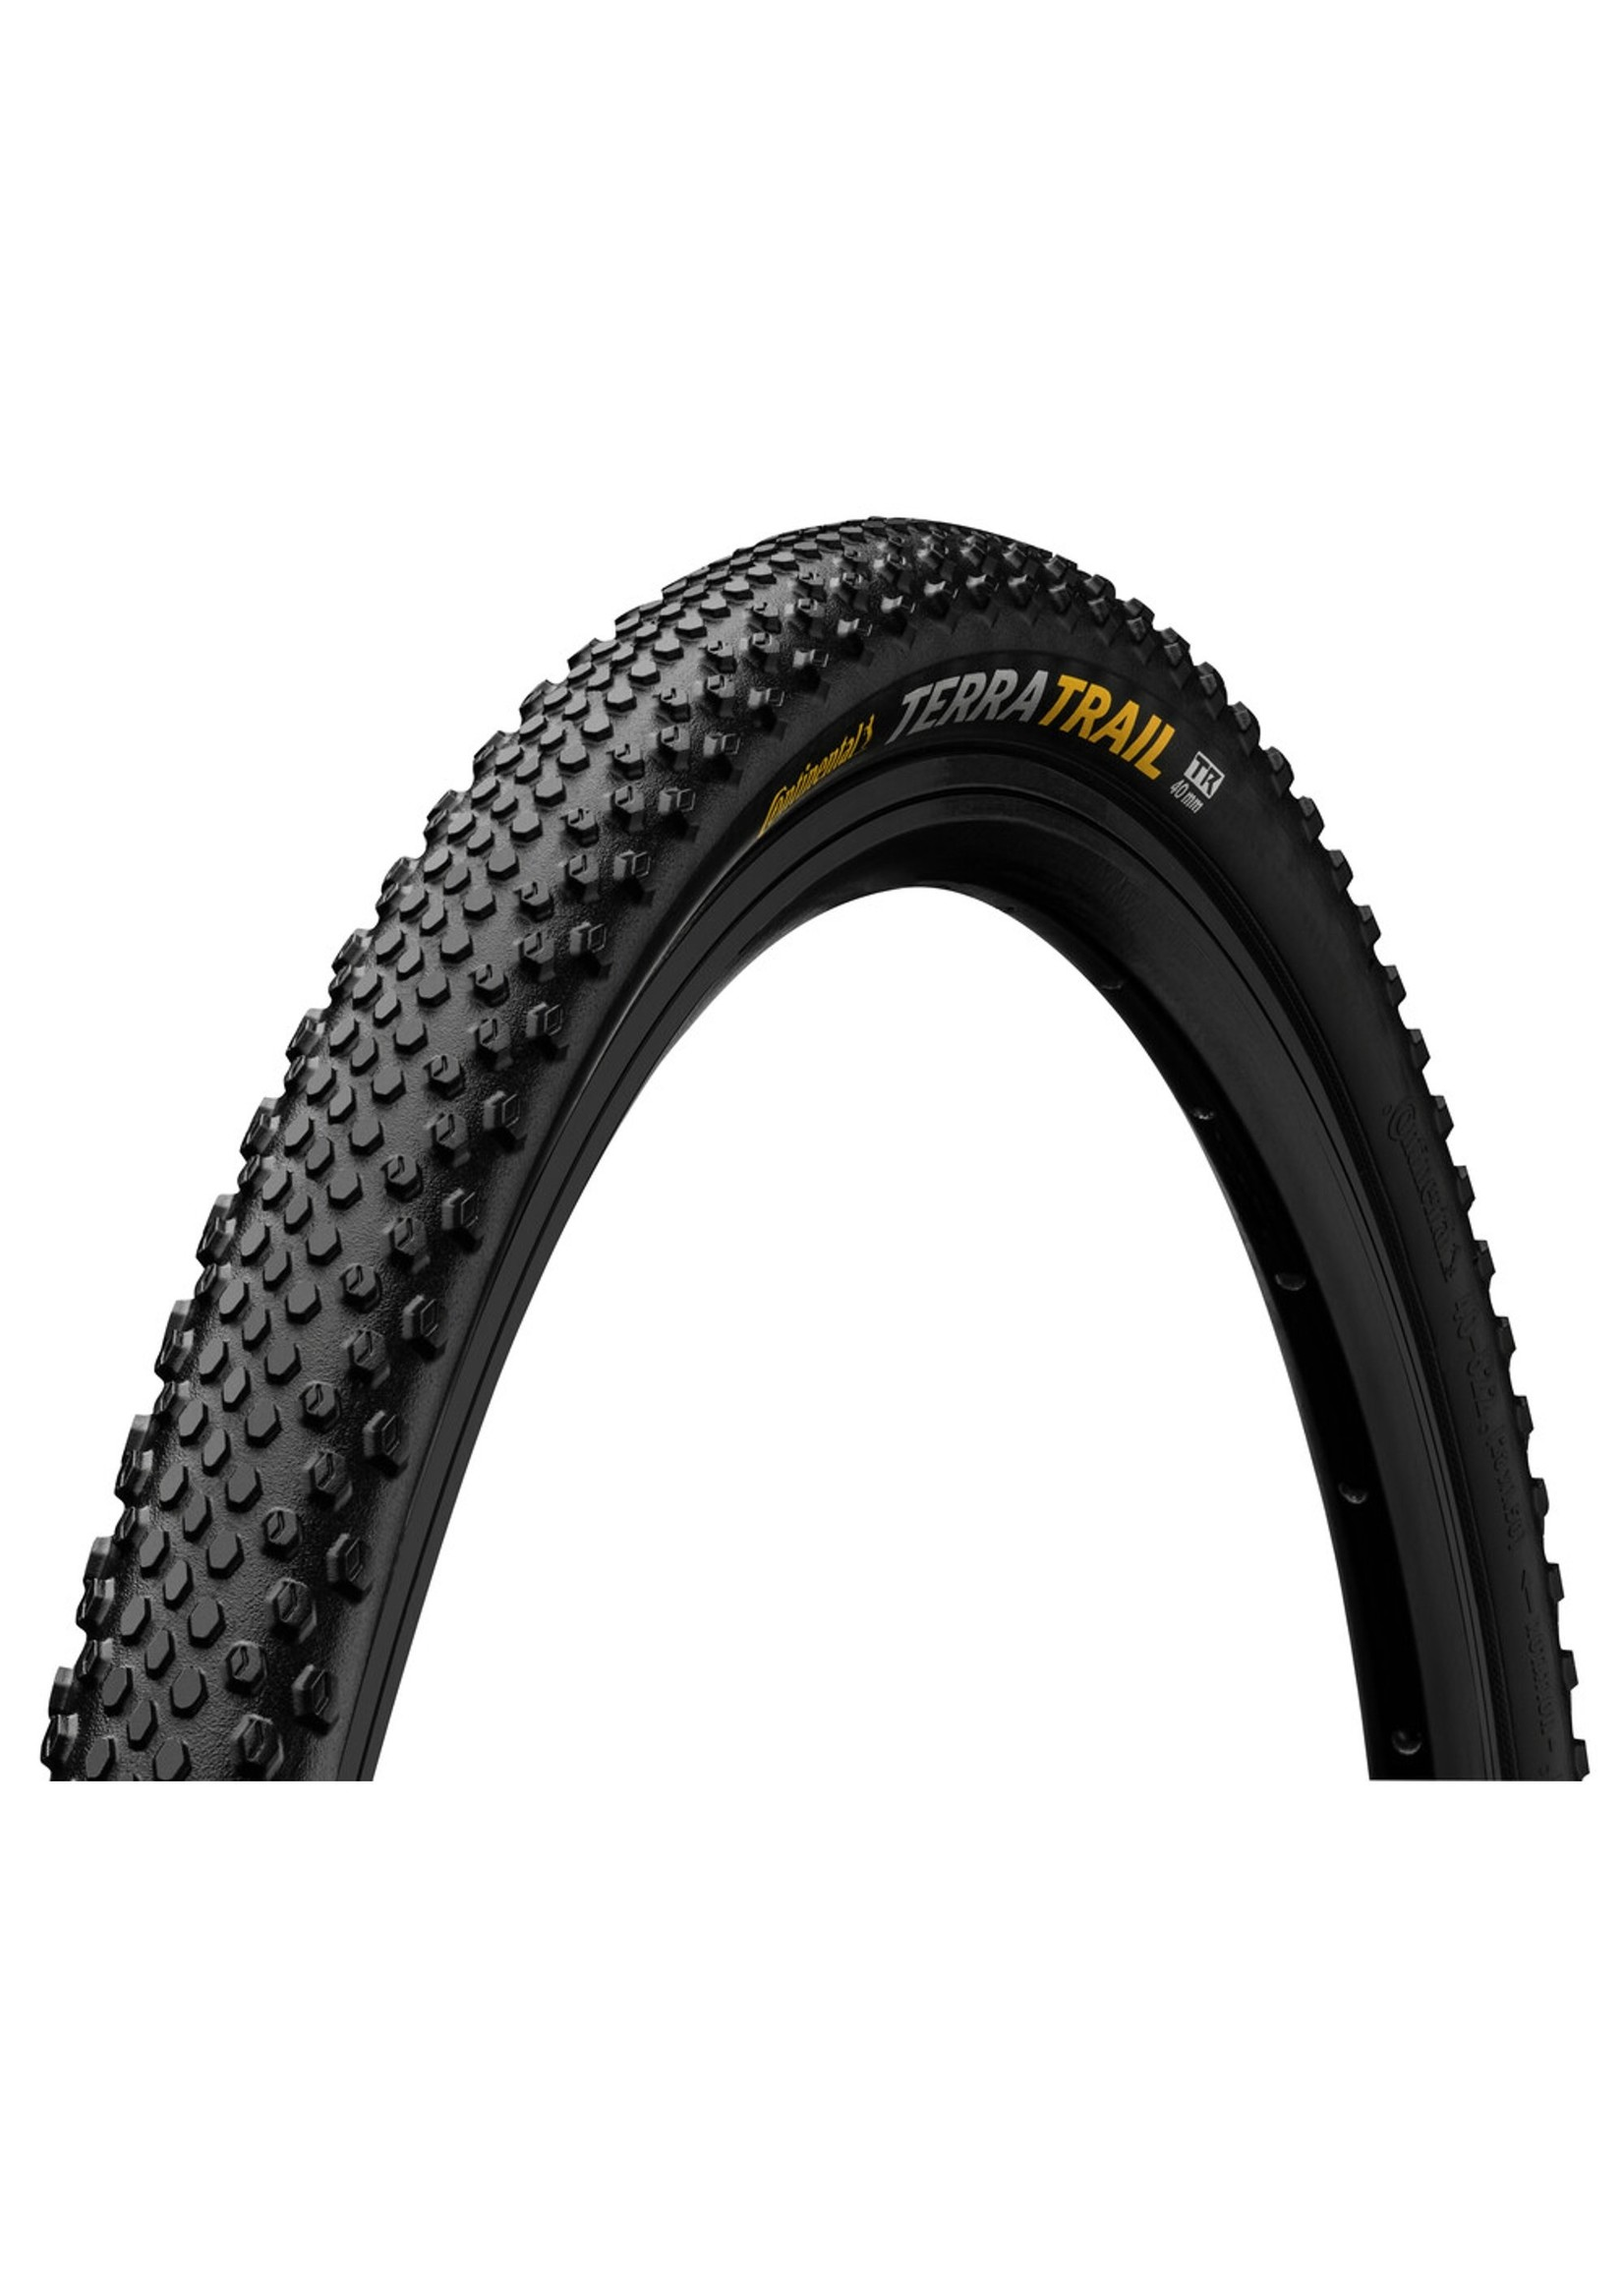 CONTINENTAL TERRA TRAIL 700 x 40 Fold ProTection TR + Black Chili